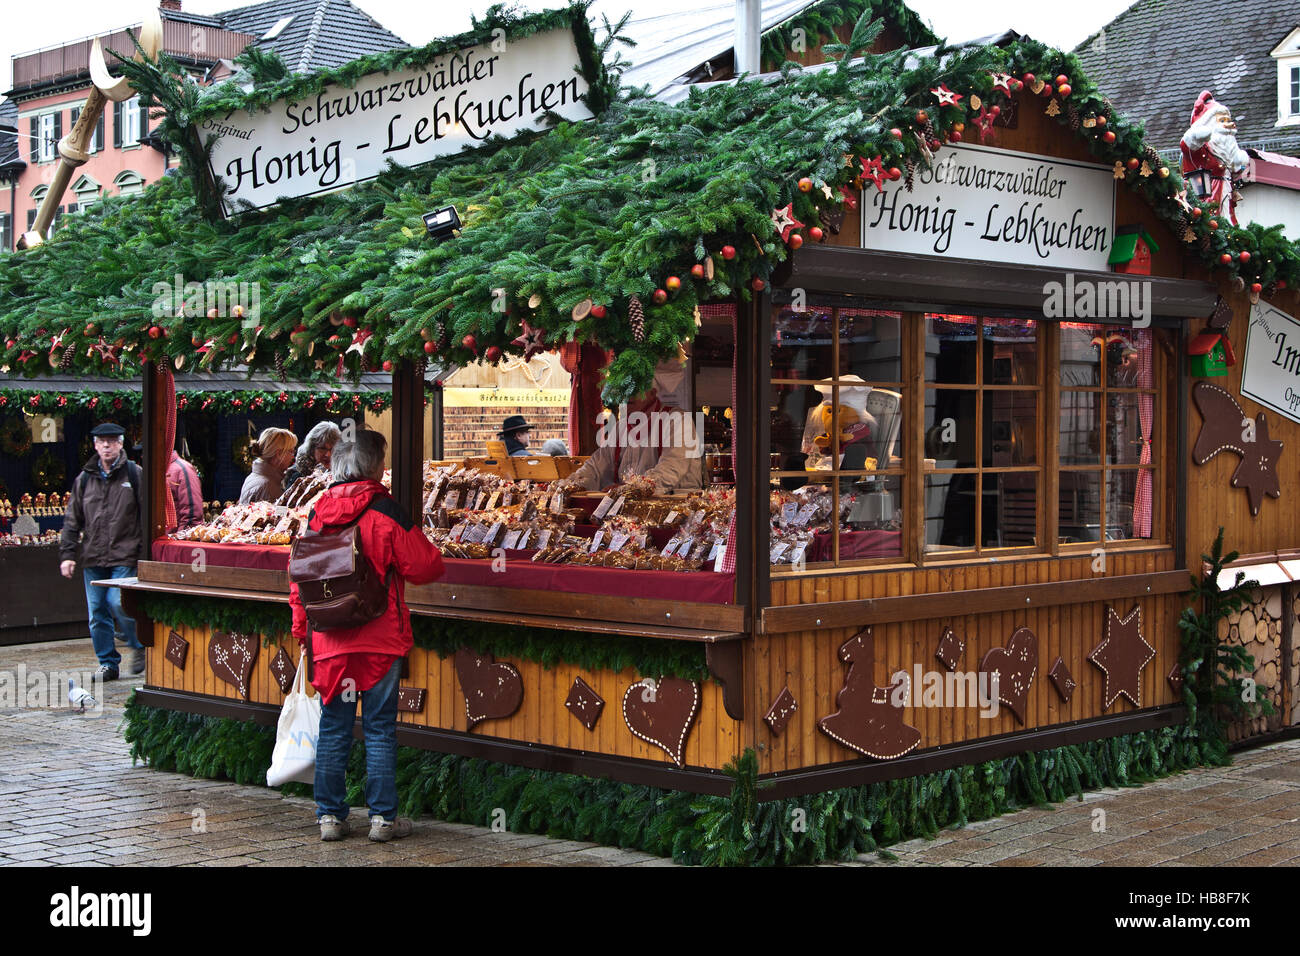 Christmas Fair Market at Ludwigsberg, Germany, Schwartzwalder Honey Lebkuchen booth, traditional spice cookies Stock Photo